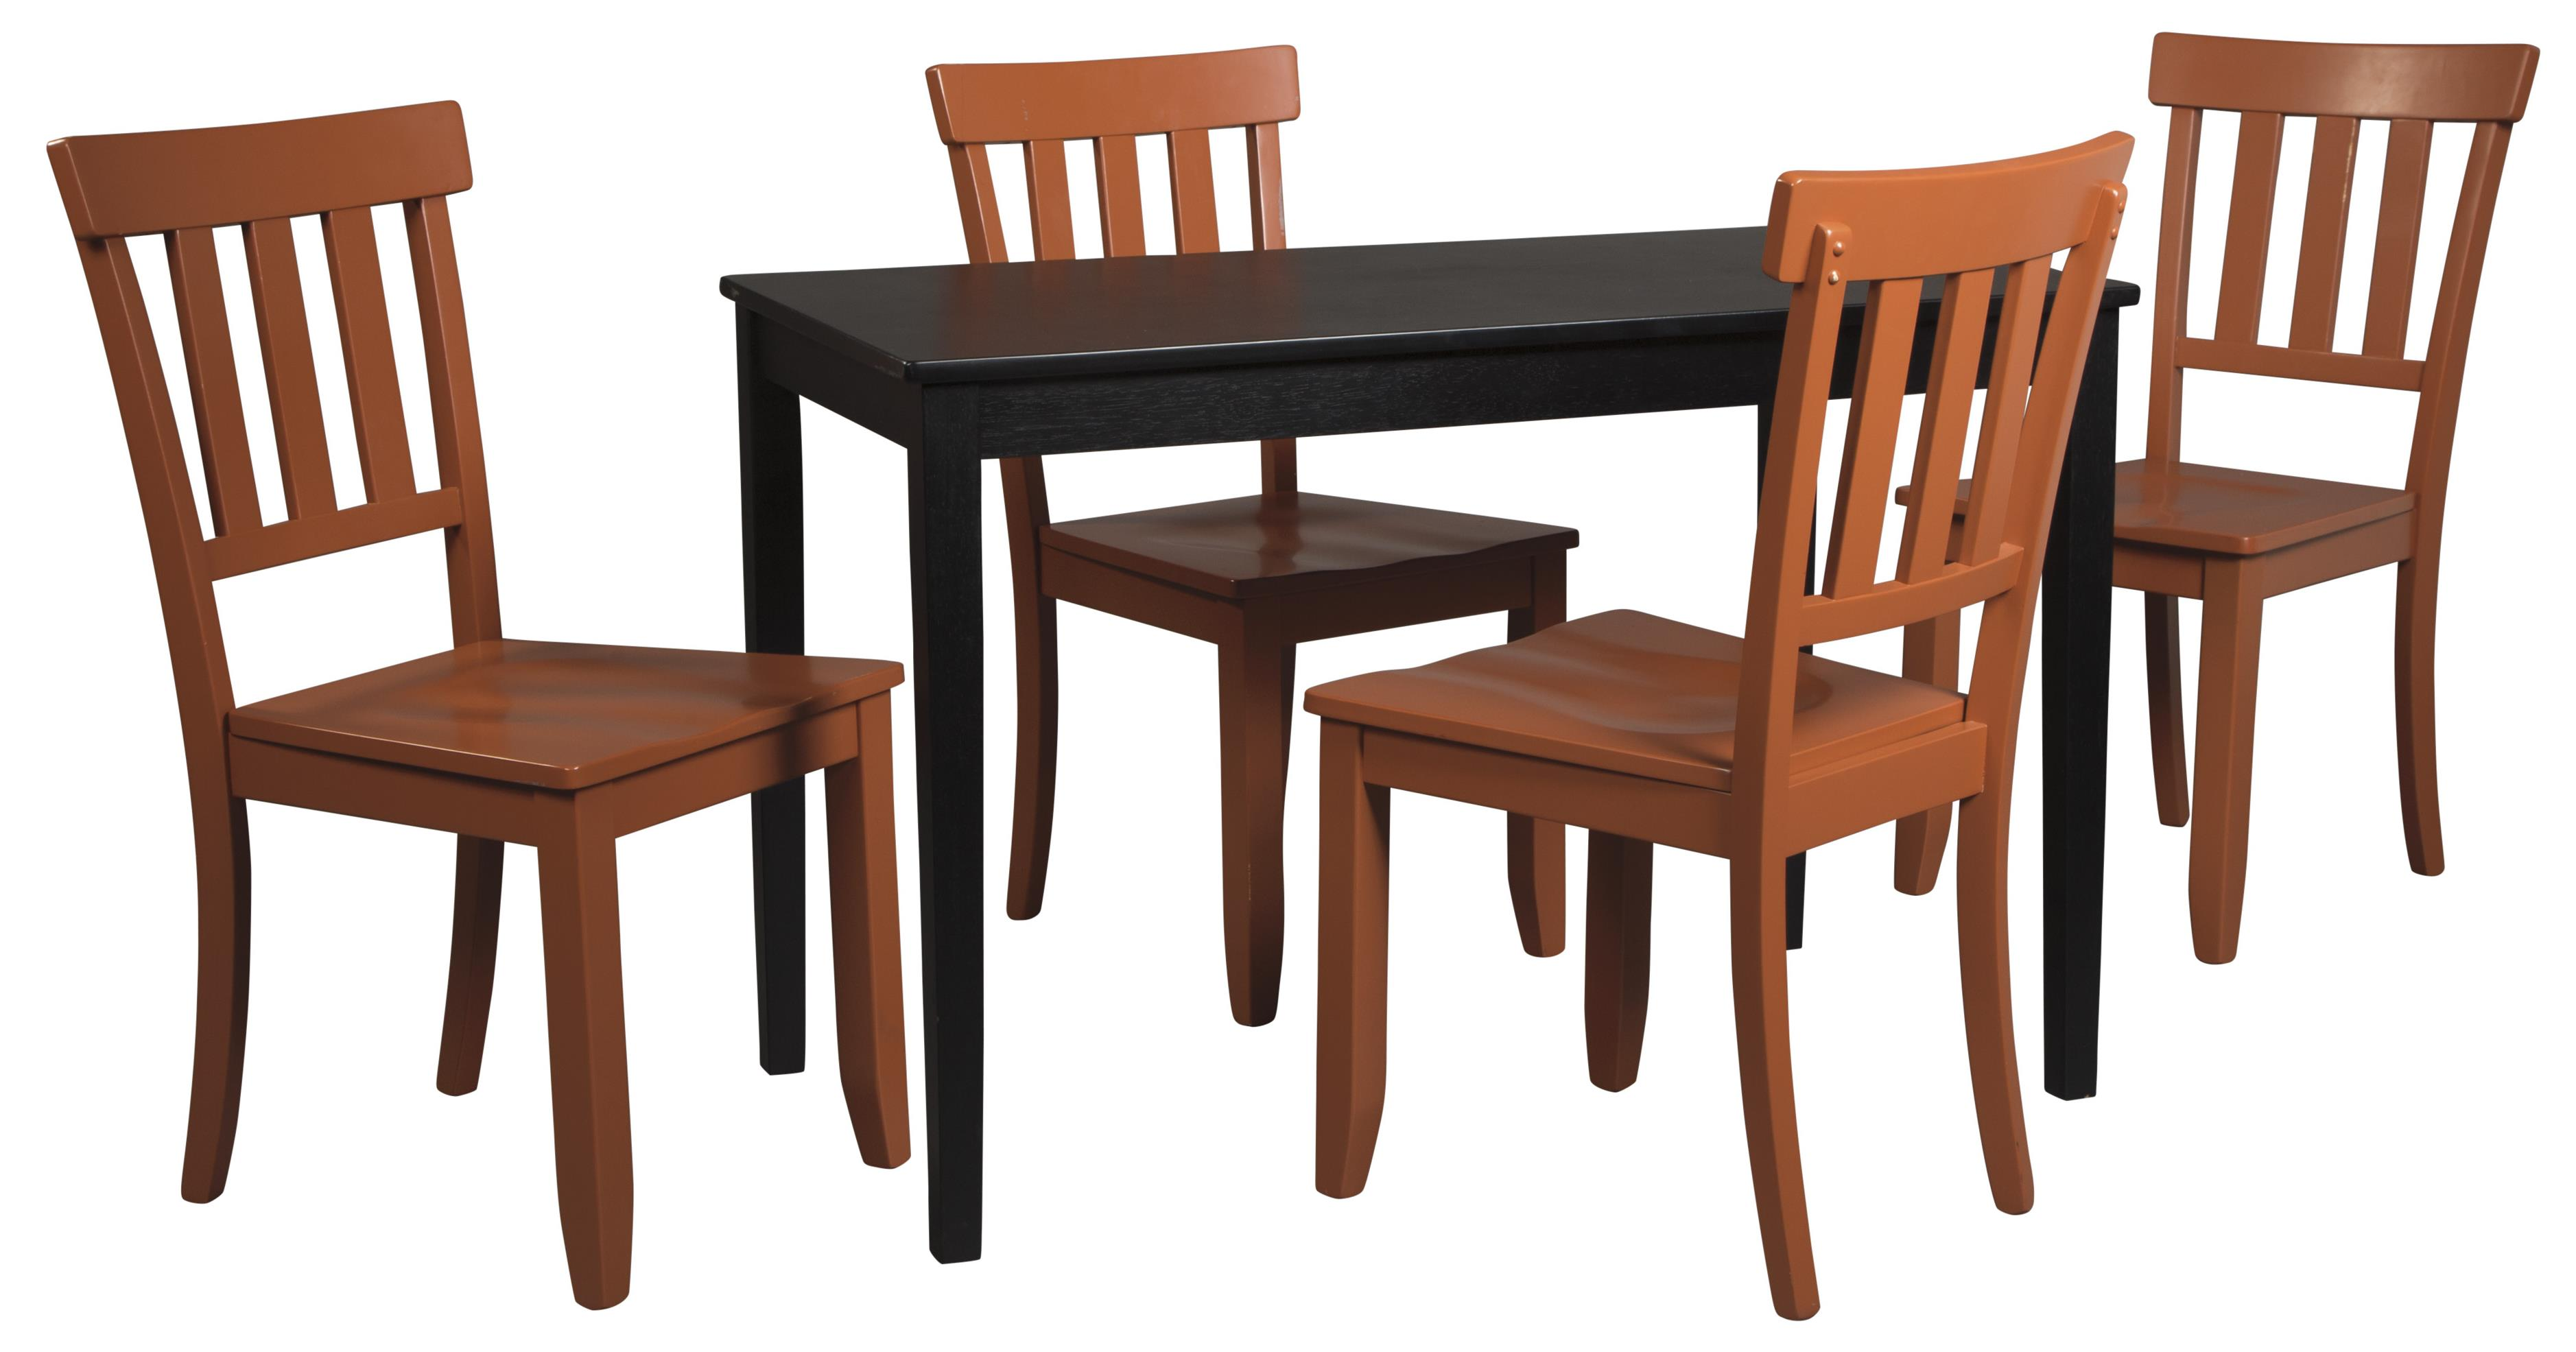 Signature Design by Ashley Kimonte 5-Piece Rectangular Table Set - Item Number: D250-25+4xD389-07